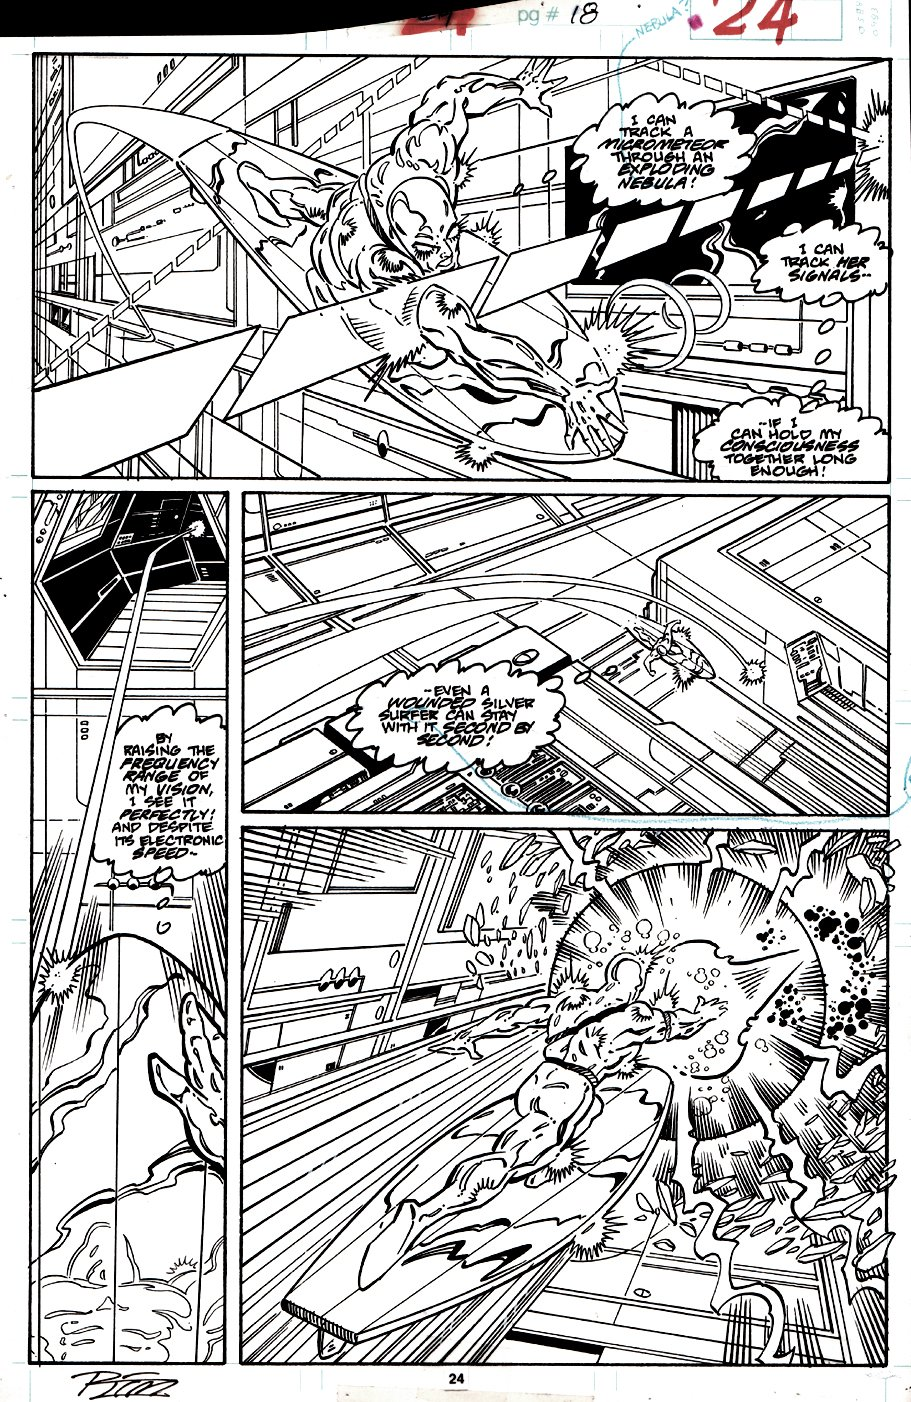 Silver Surfer #24 p 24 (COVER SCENE, SURFER IN EVERY PANEL!) 1989